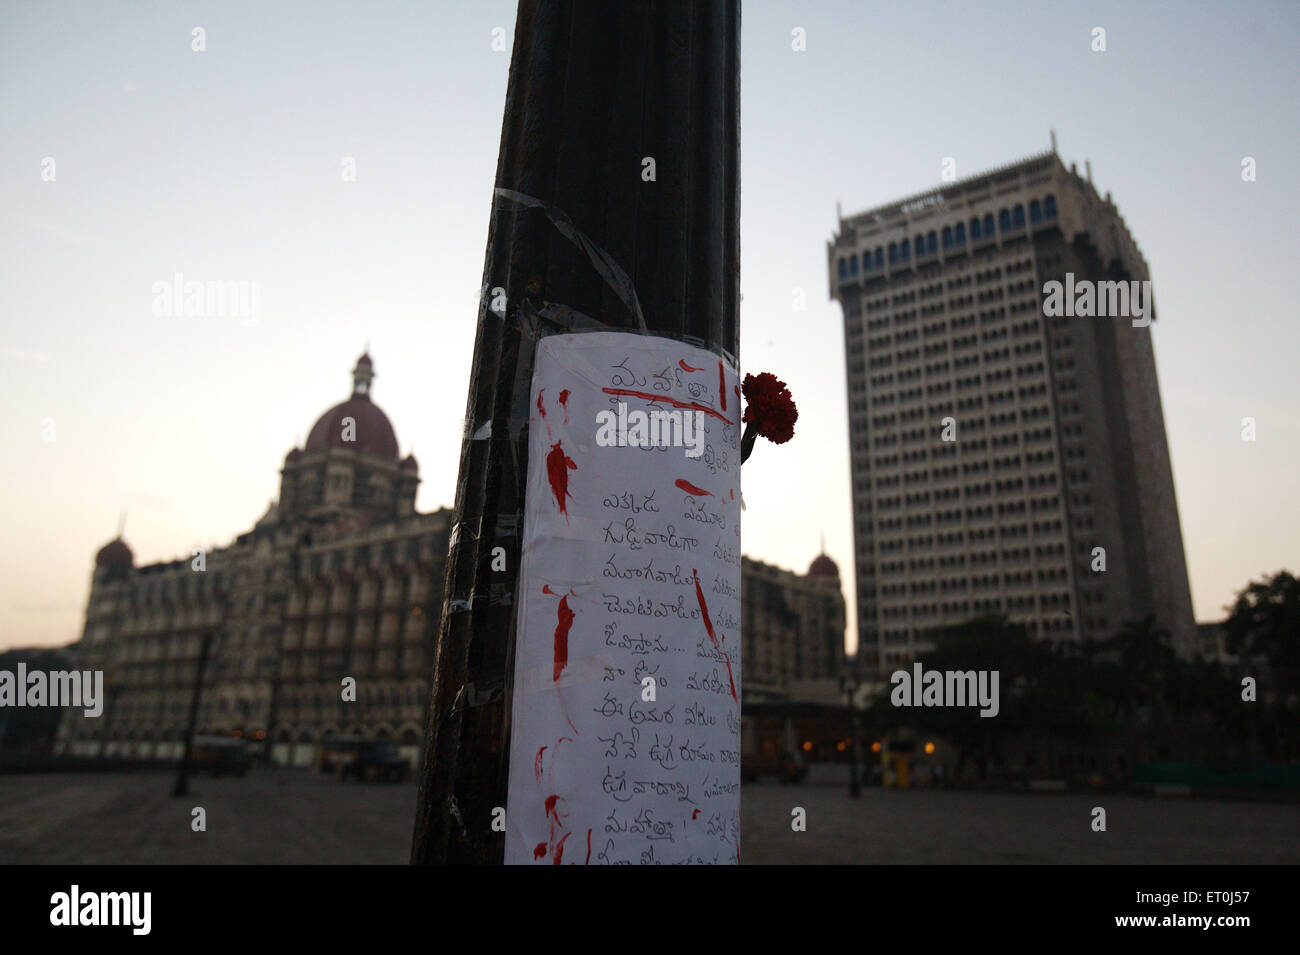 Condolence message written south Indian language red rose pole Gateway victims terrorist attack on 26th November - Stock Image